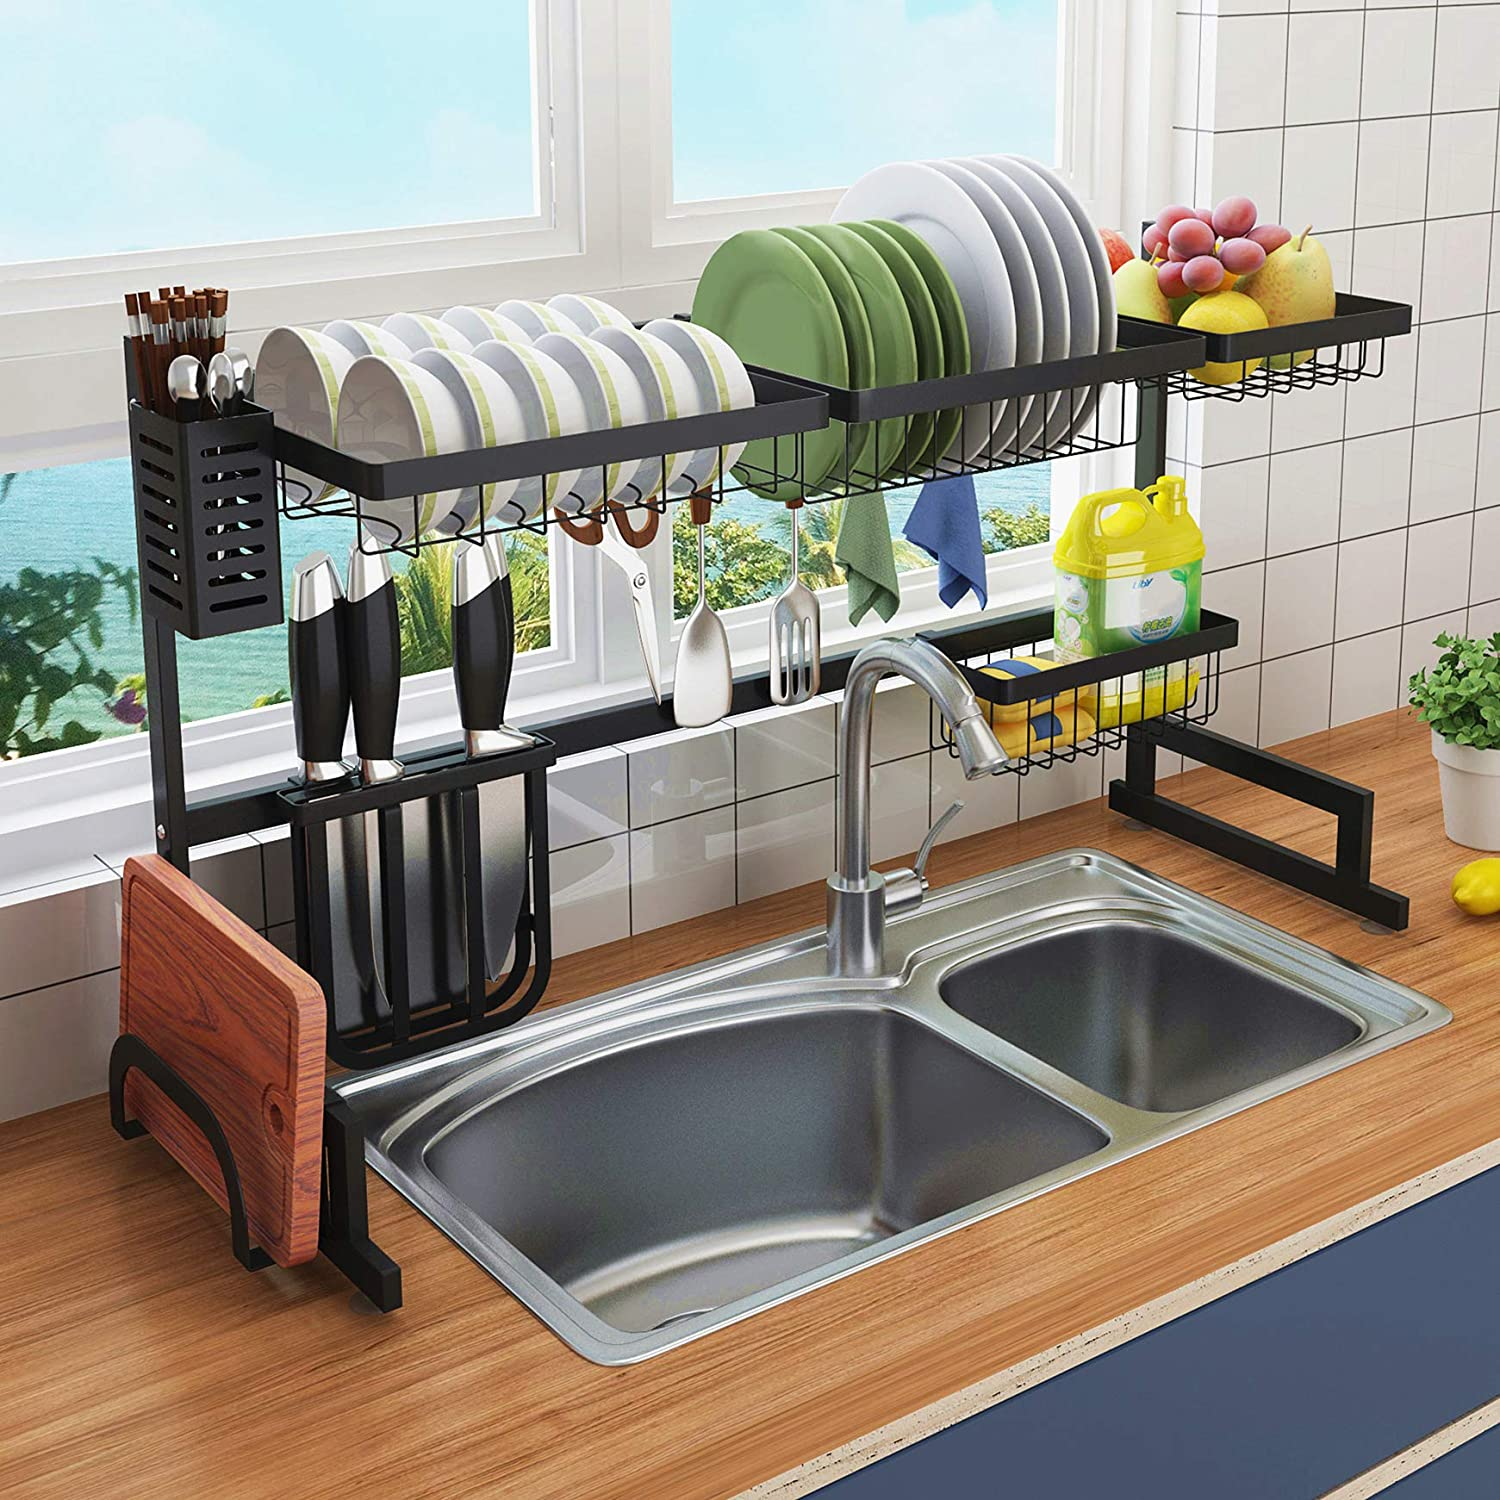 Best Drainer Rack For Dish Sponge Soap Behind Kitchen